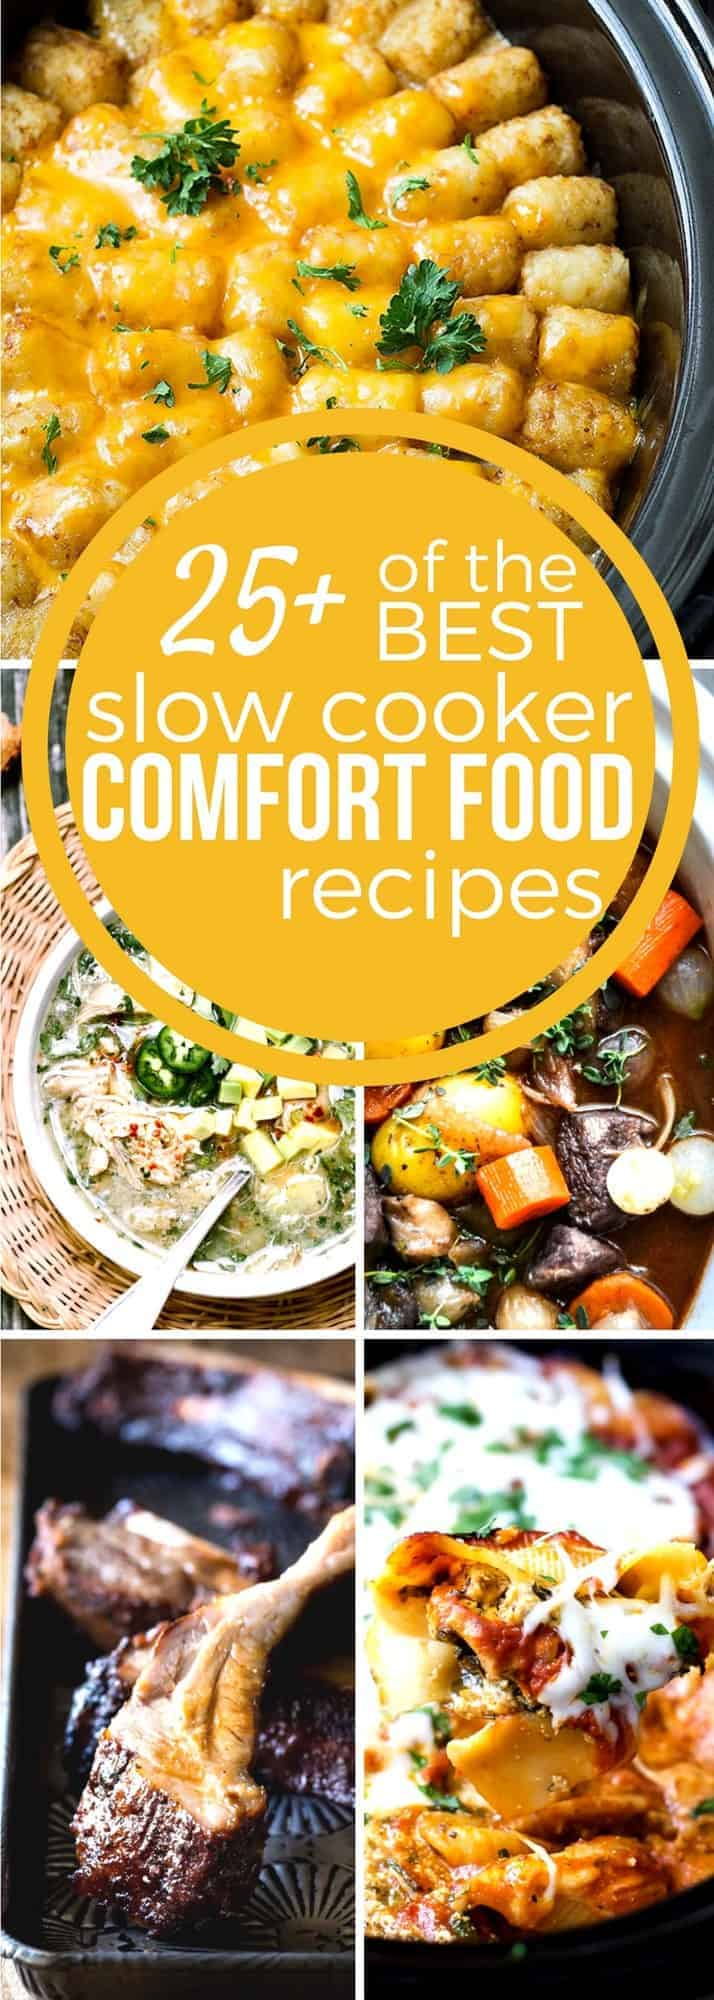 How Long Can You Leave Food In A Slow Cooker